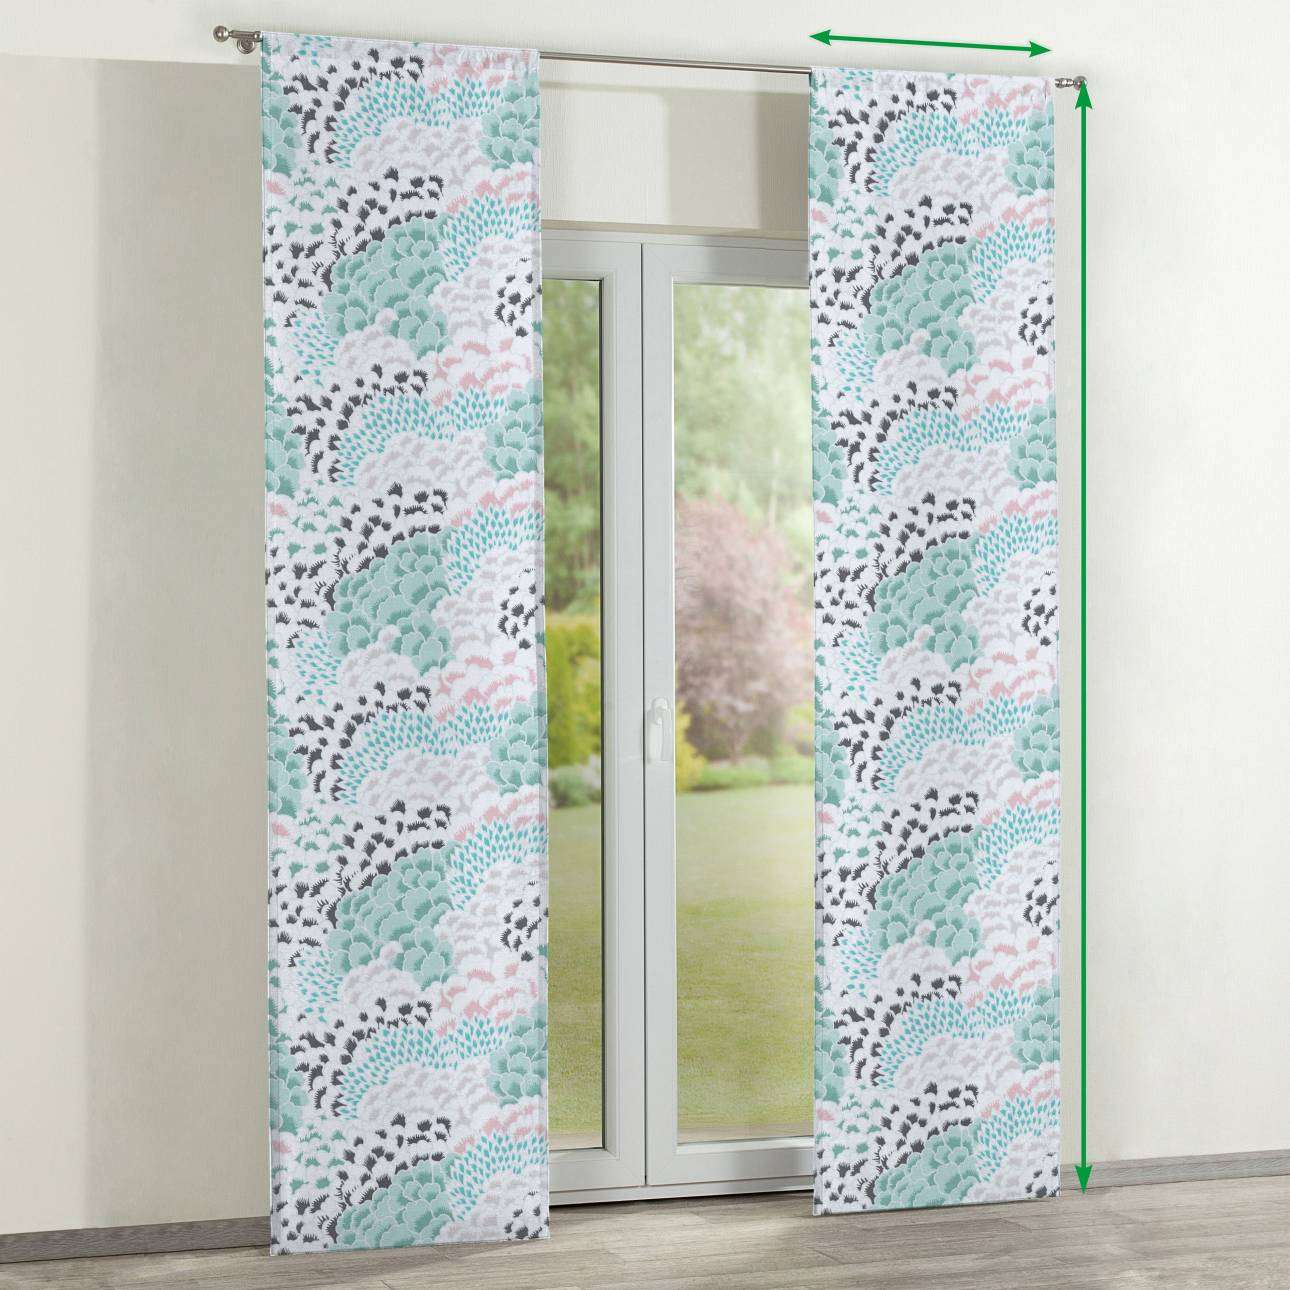 Slot panel curtains – Set of 2 in collection Brooklyn, fabric: 137-89